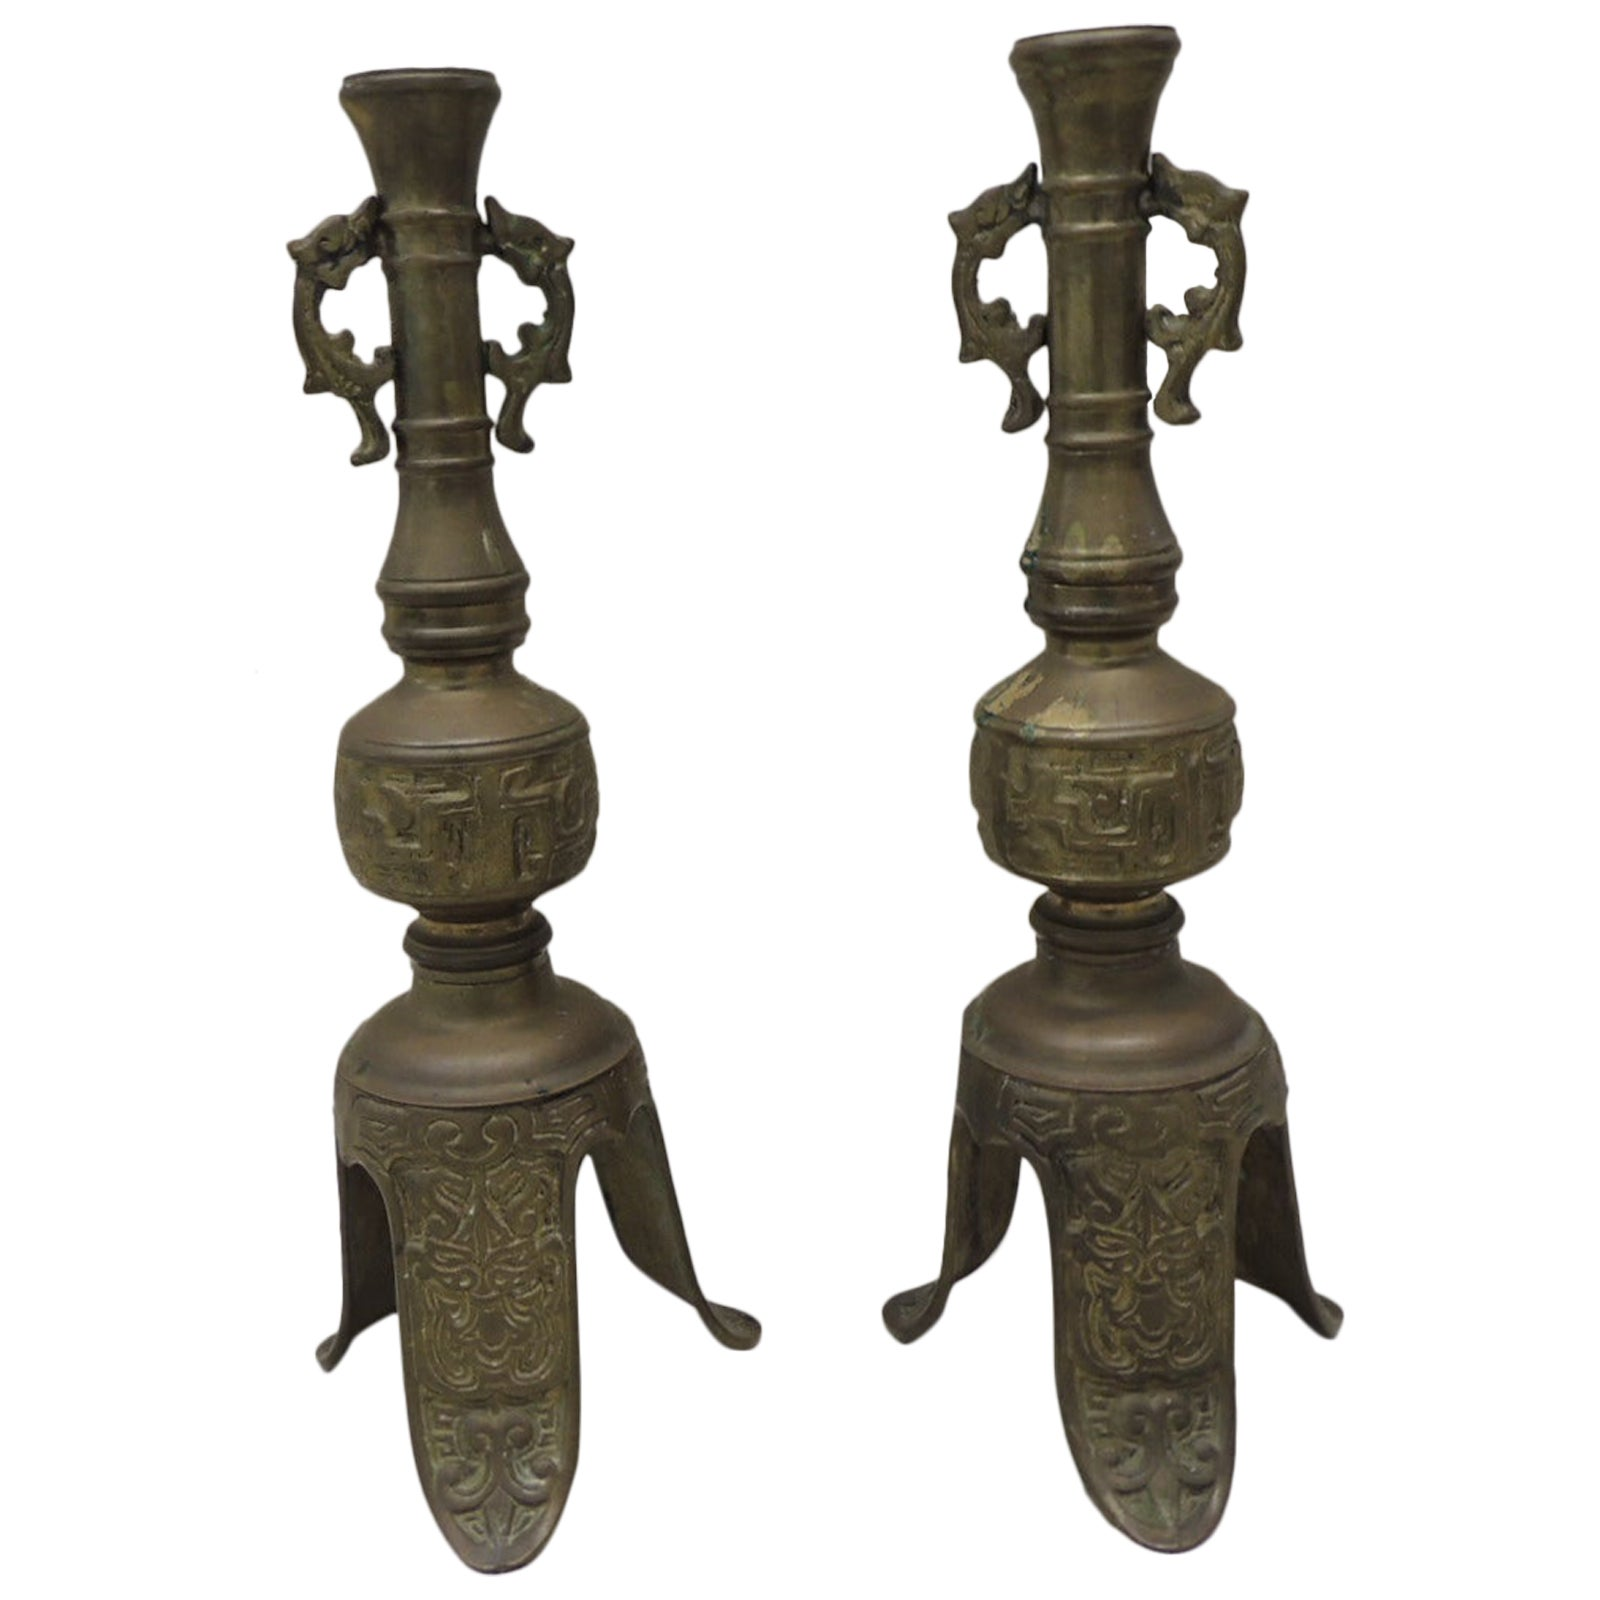 Pair of Vintage Brass Asian Candlesticks